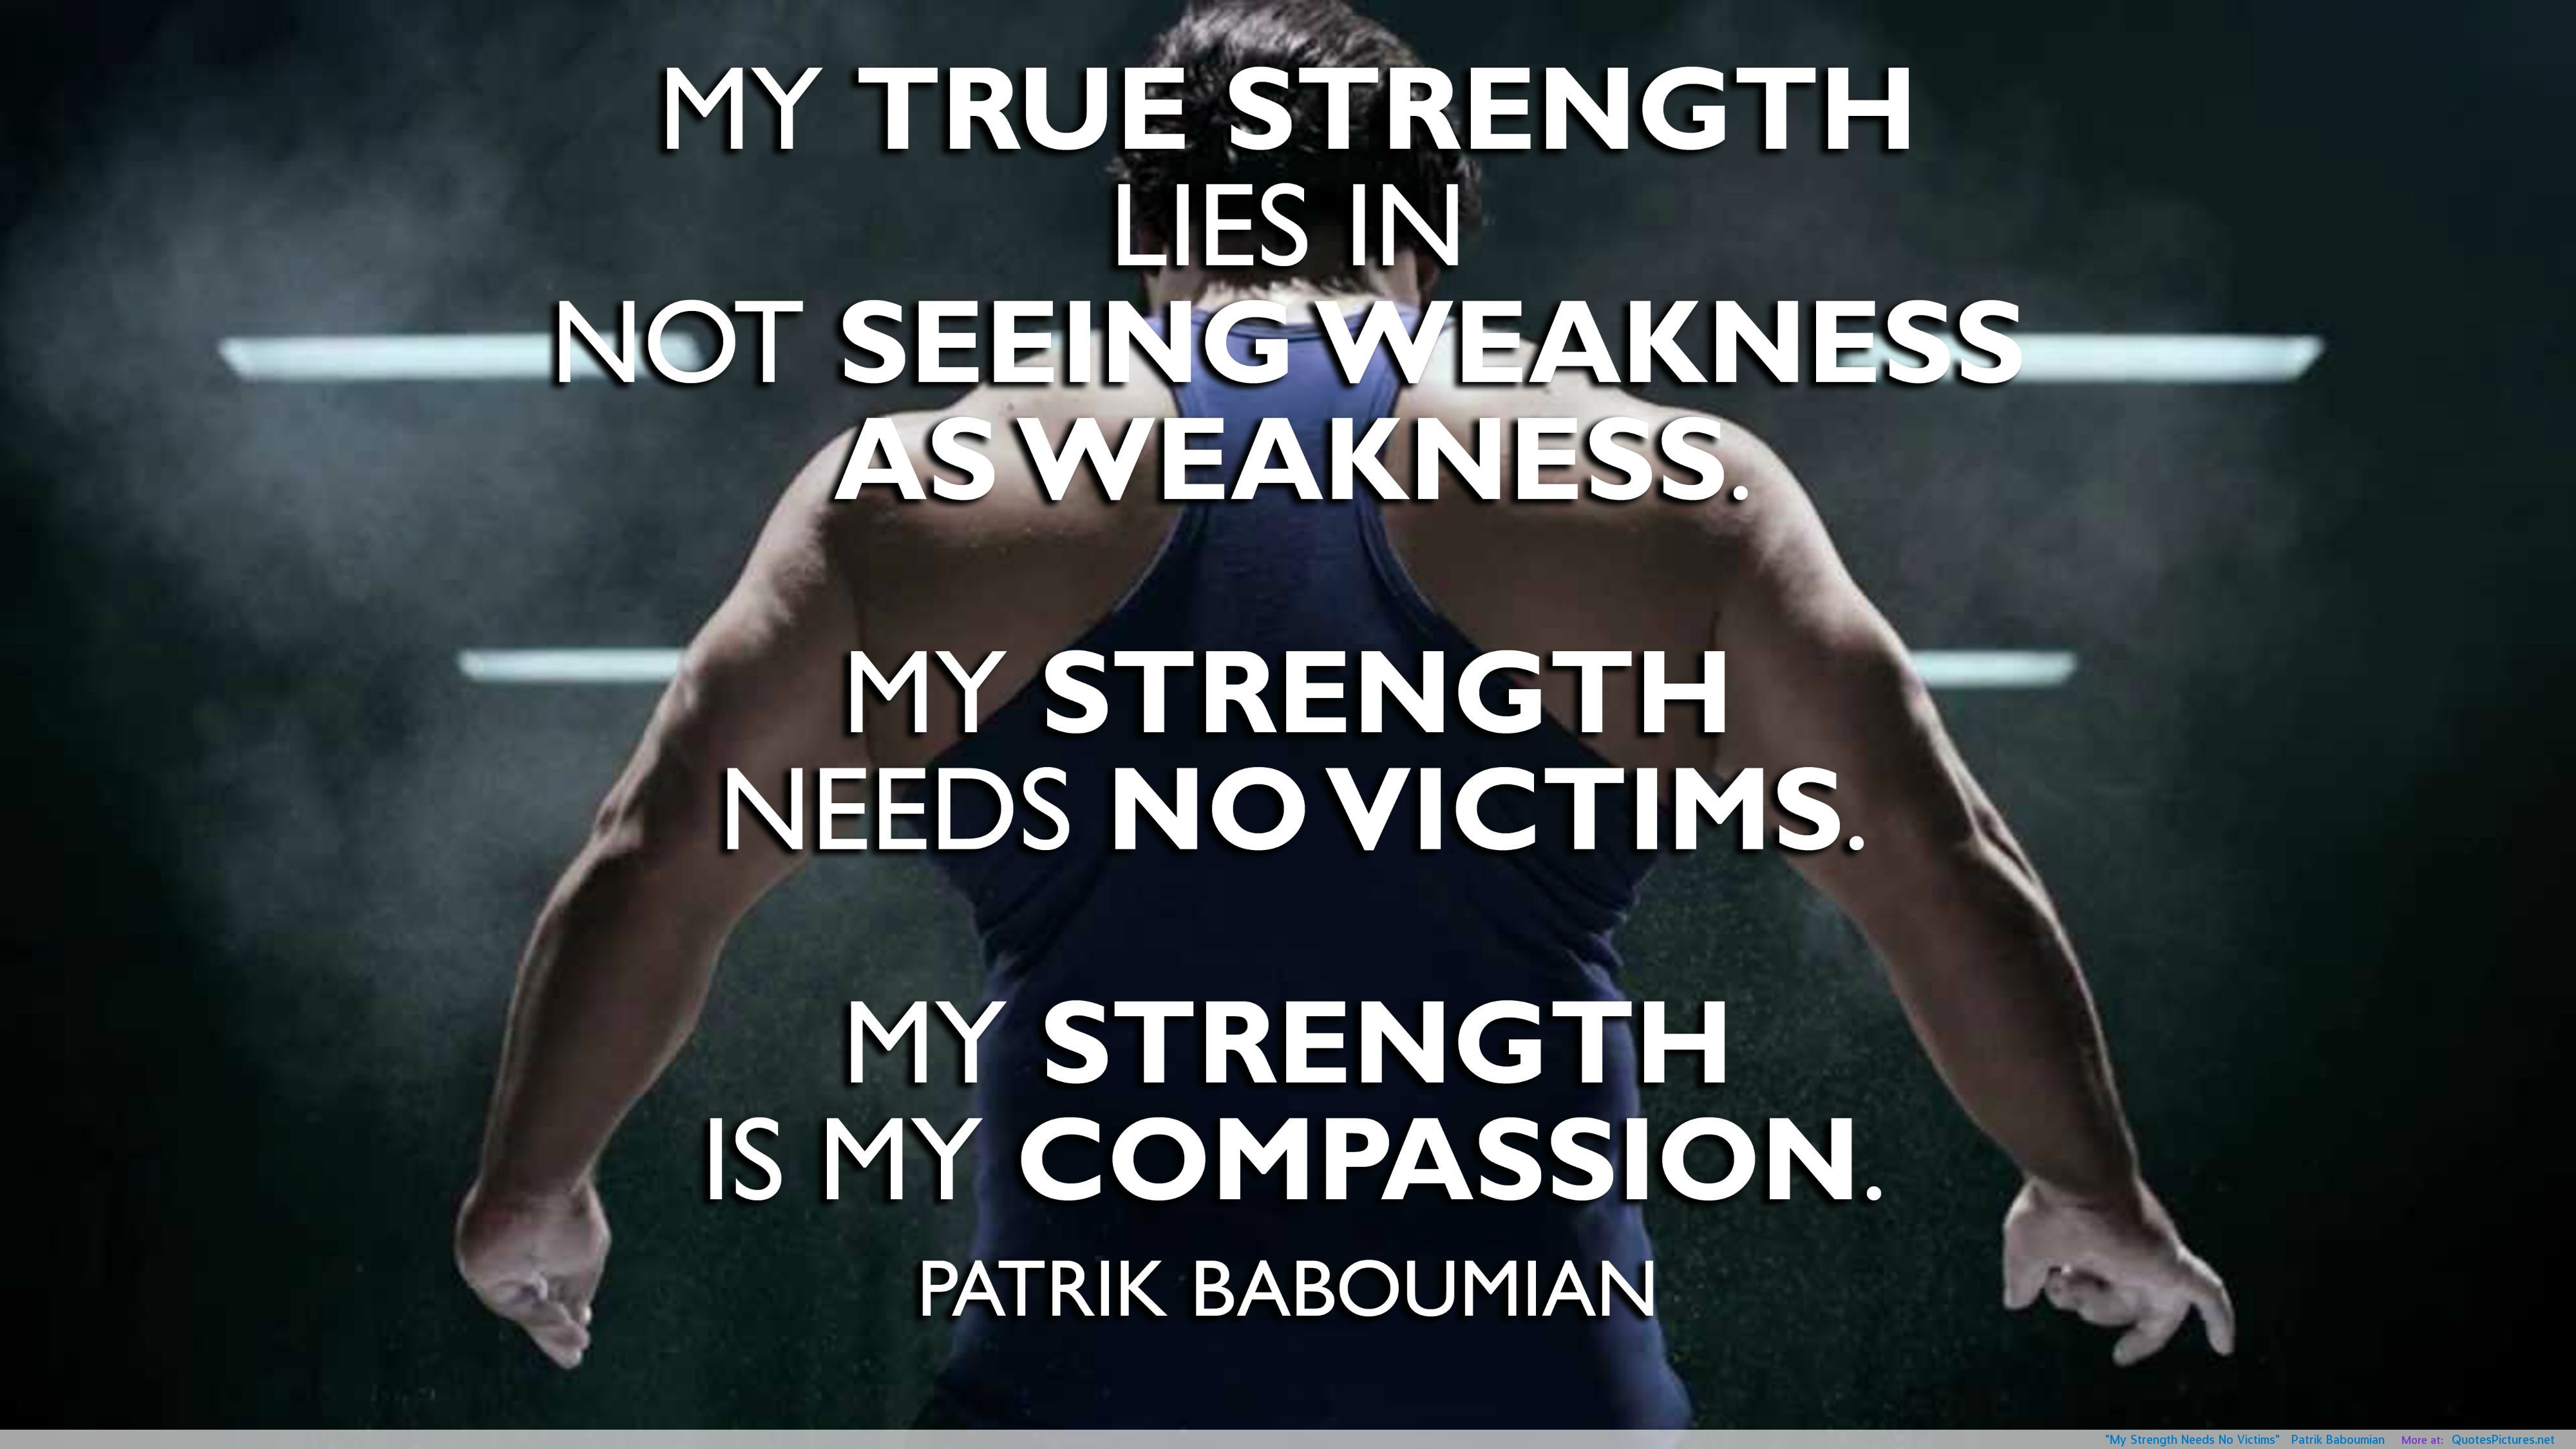 Strength Quotes: My Strength Quotes And Sayings. QuotesGram